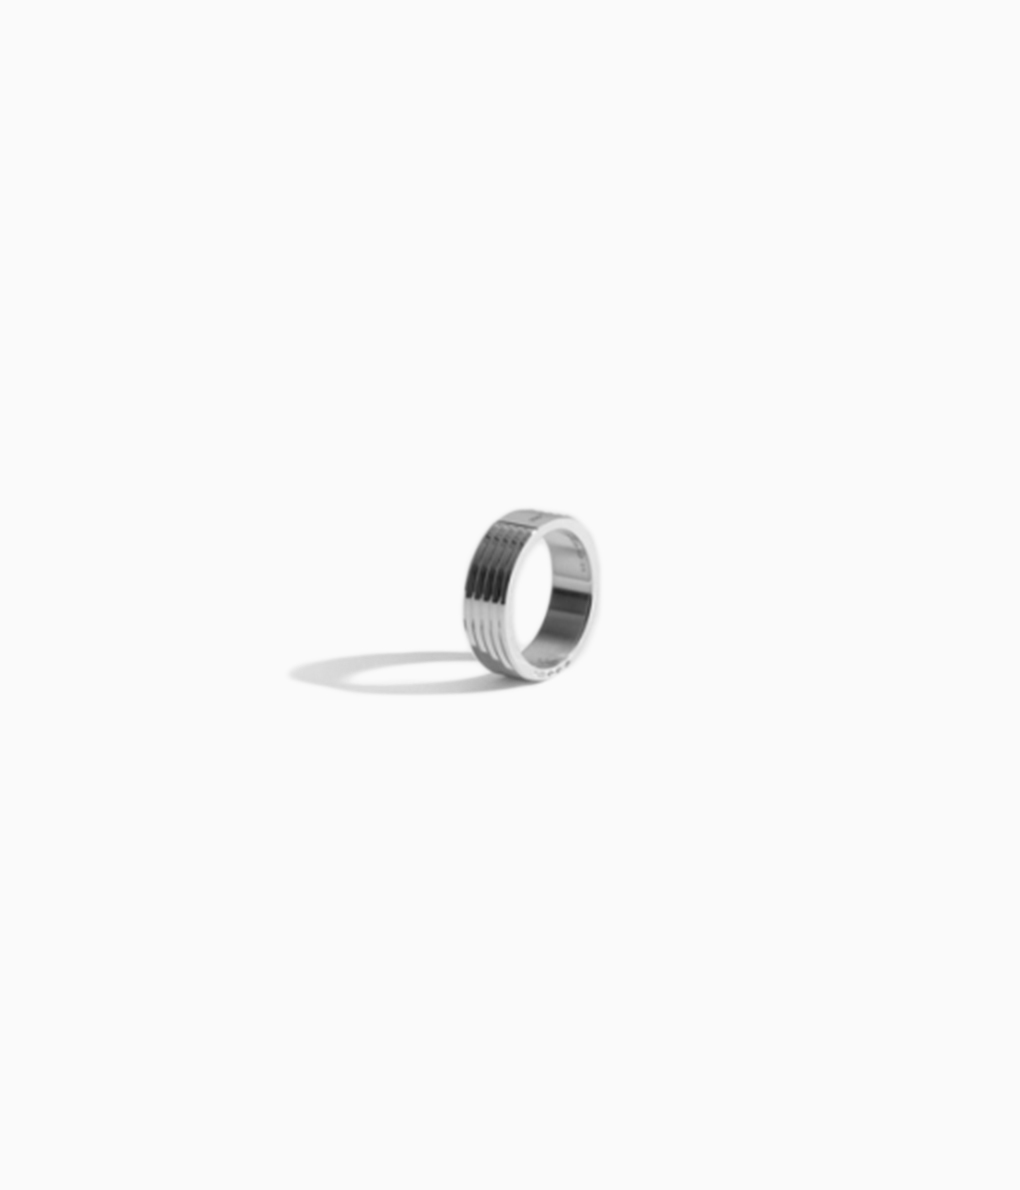 (OUTLET/返品・交換不可)LE GRAMME ルグラム11G Guilloche Polished Ringリング(ライン入り)11G